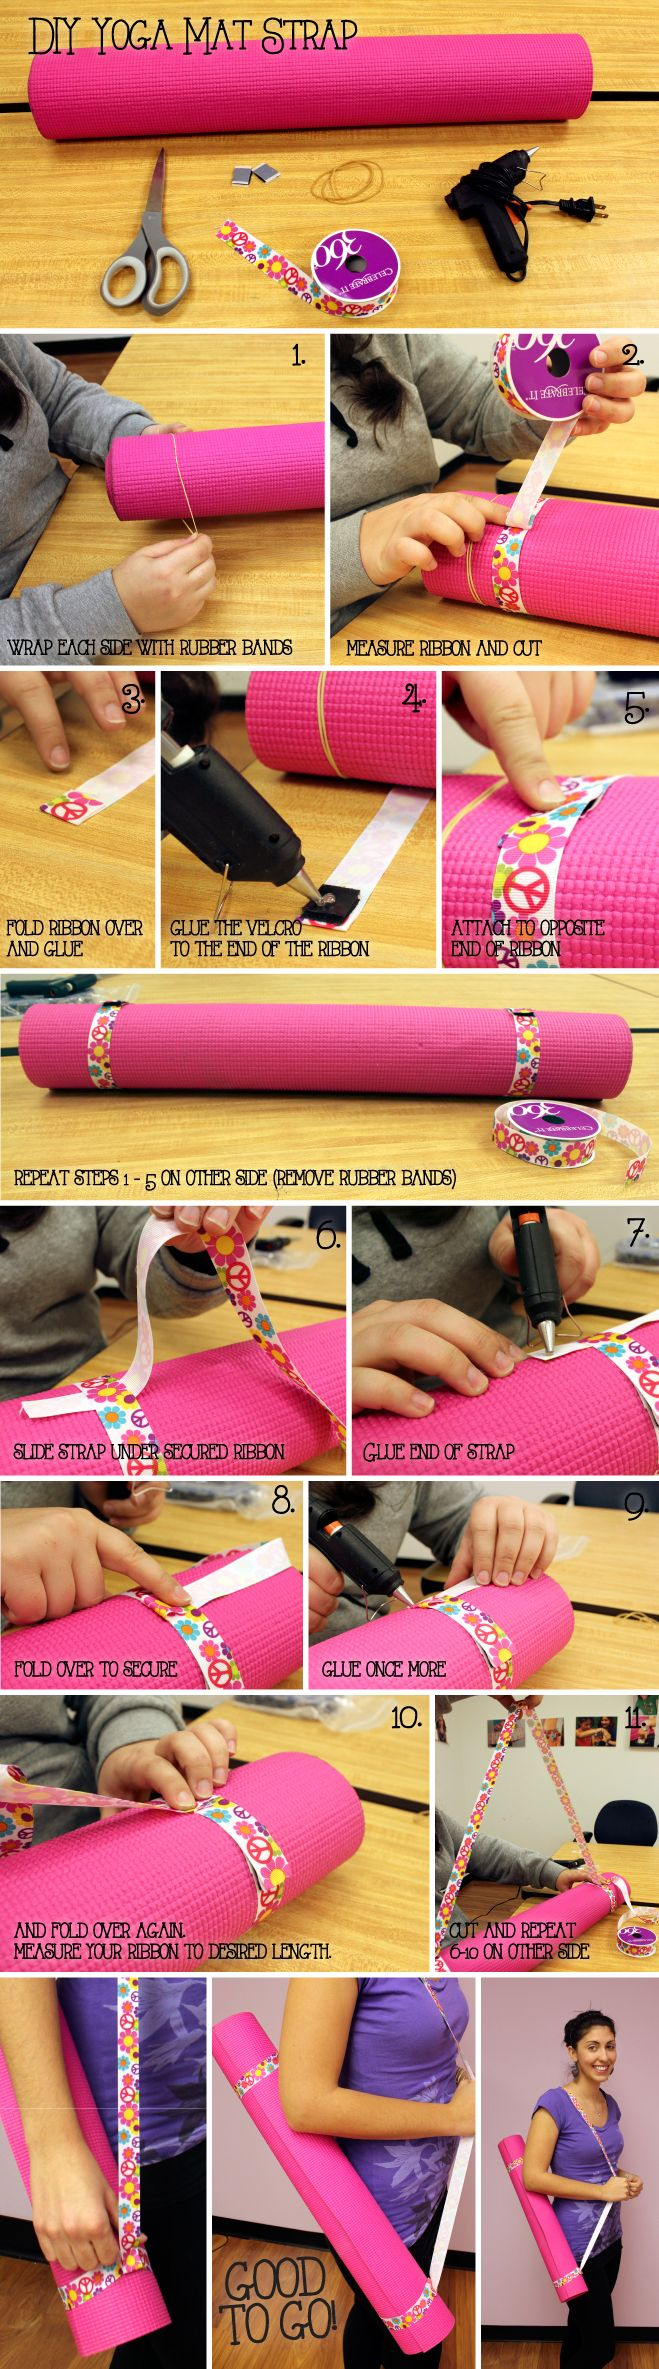 Create IT:  DIY Yoga Mat Strap. An easy and fun craft for kids, too!